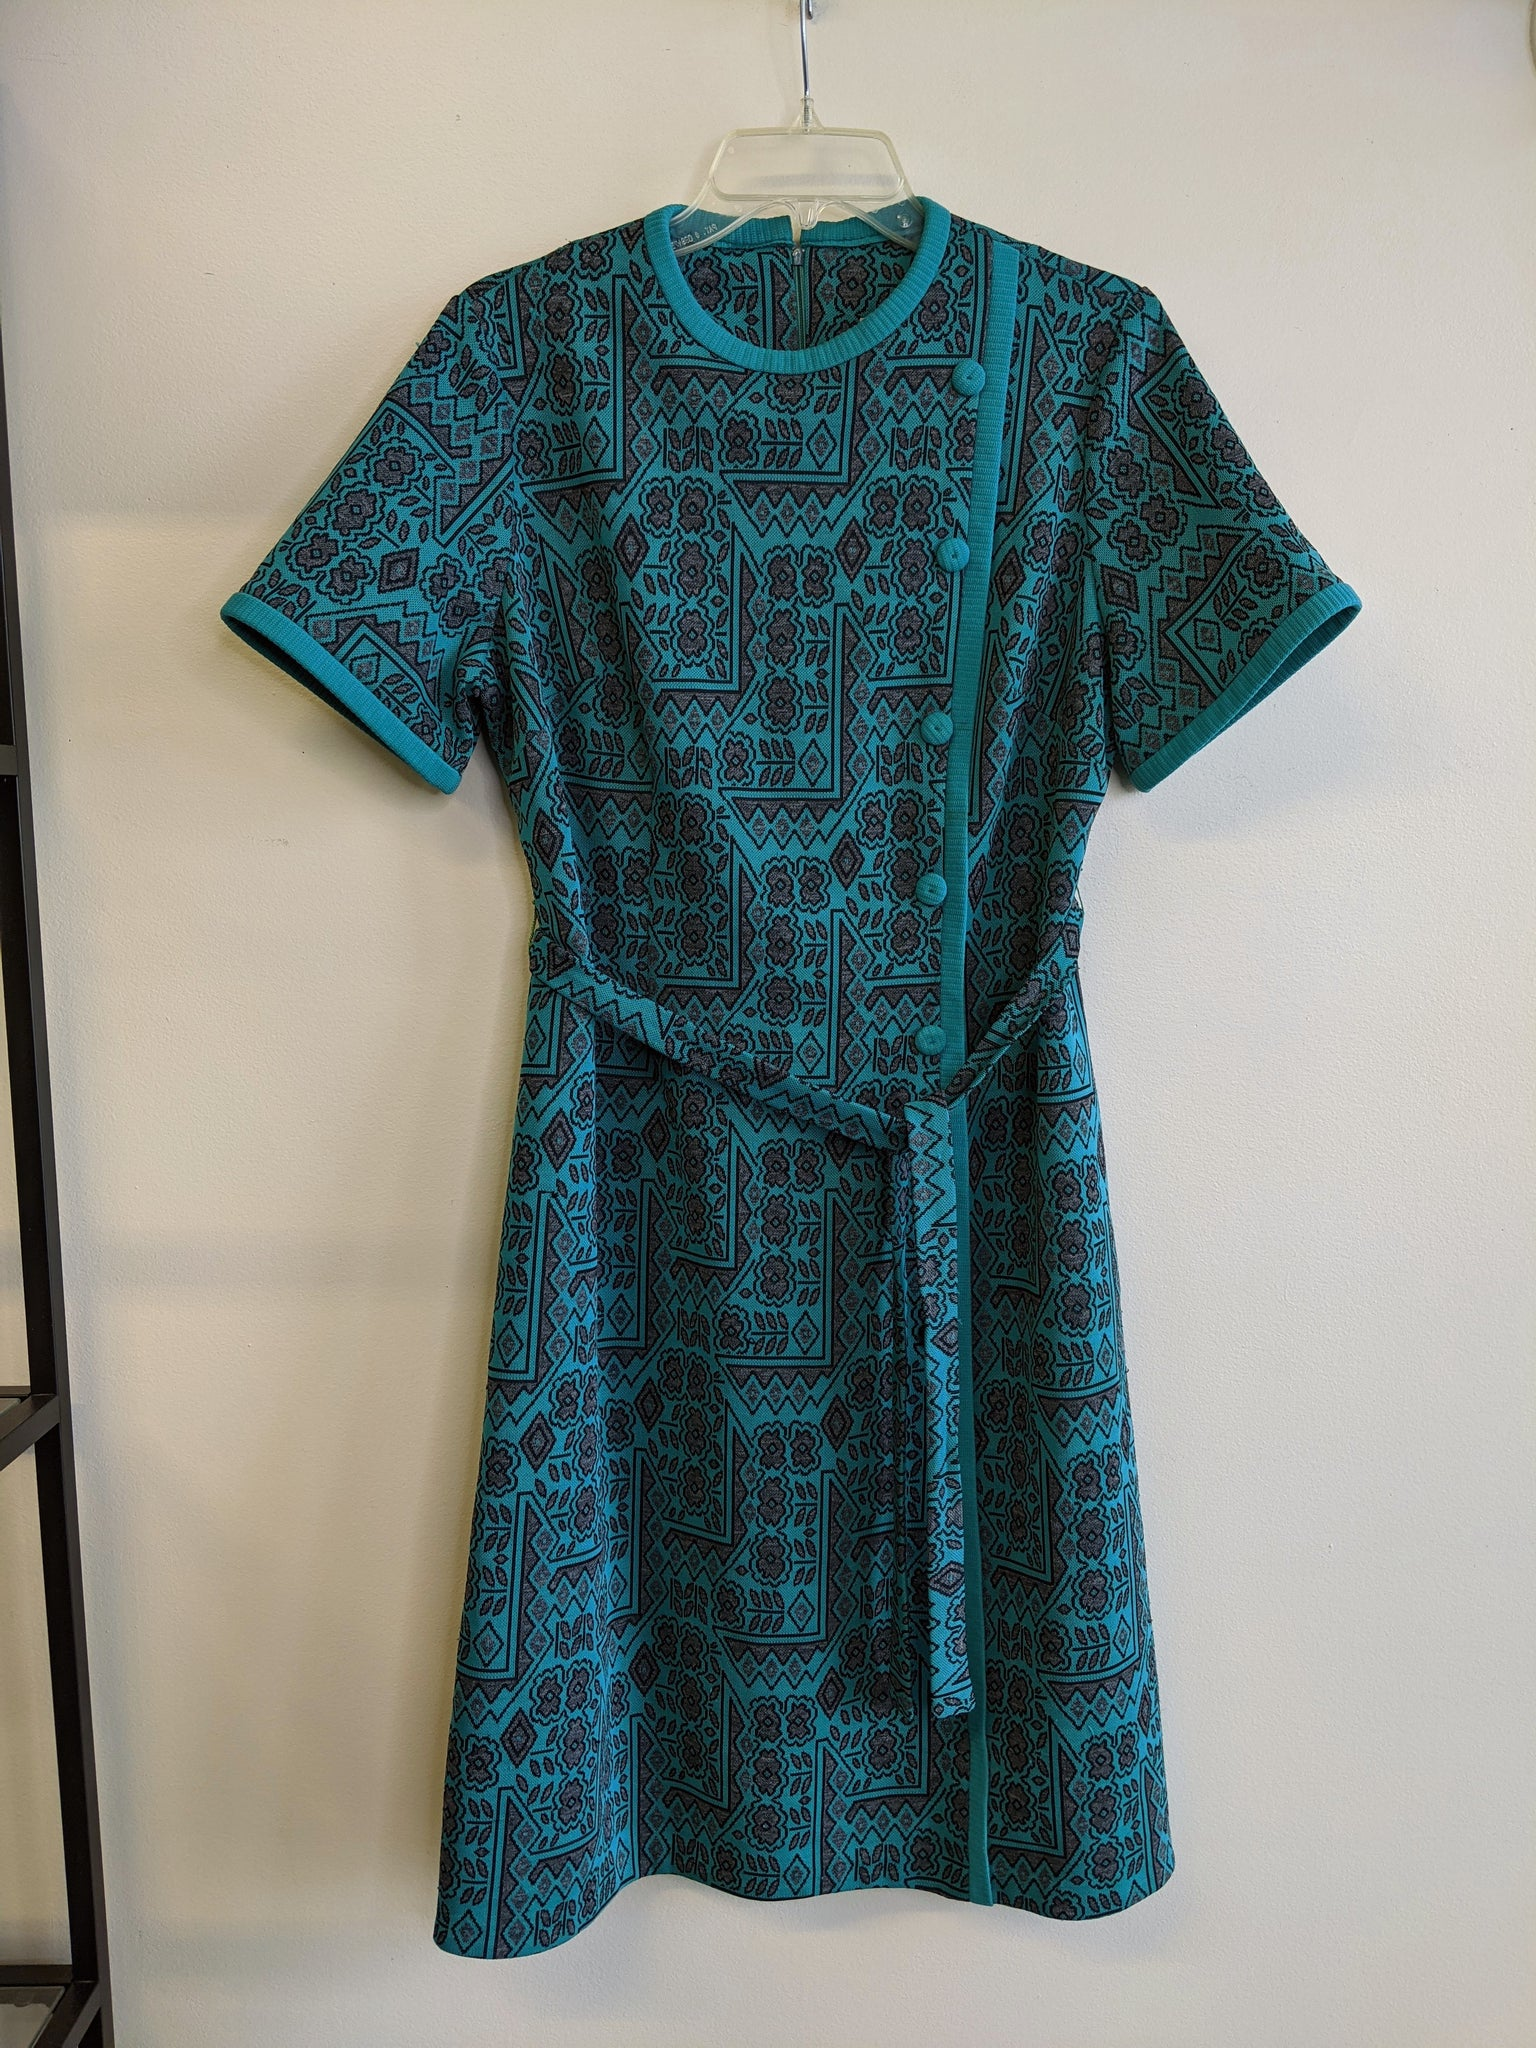 1970's Teal Geometric Print Dress